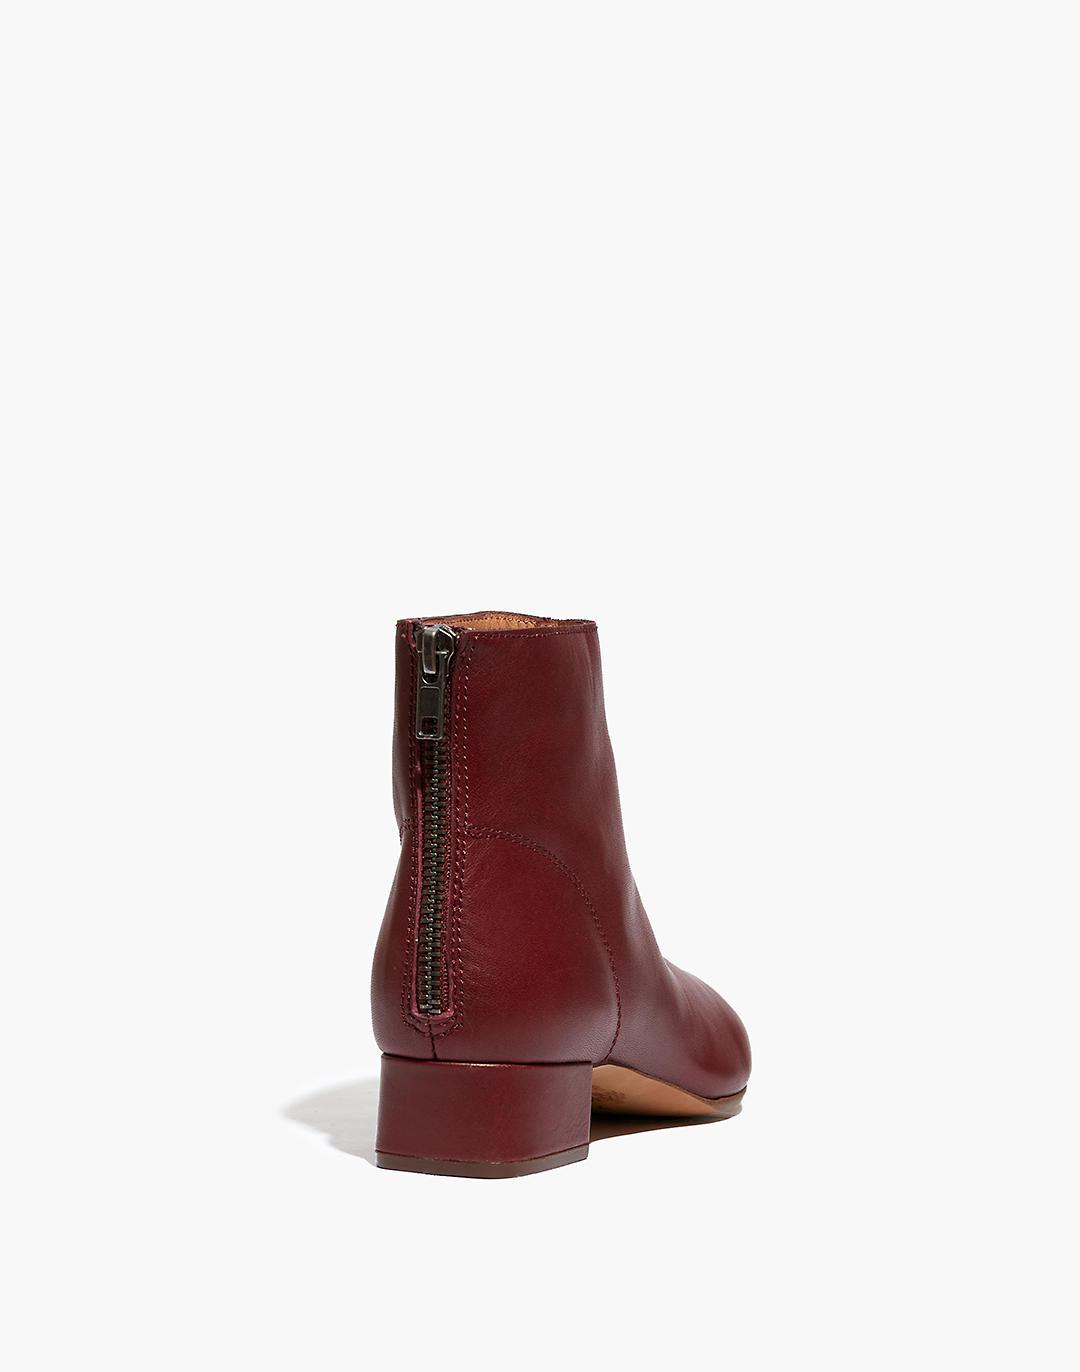 The Rena Ankle Boot in Leather 2